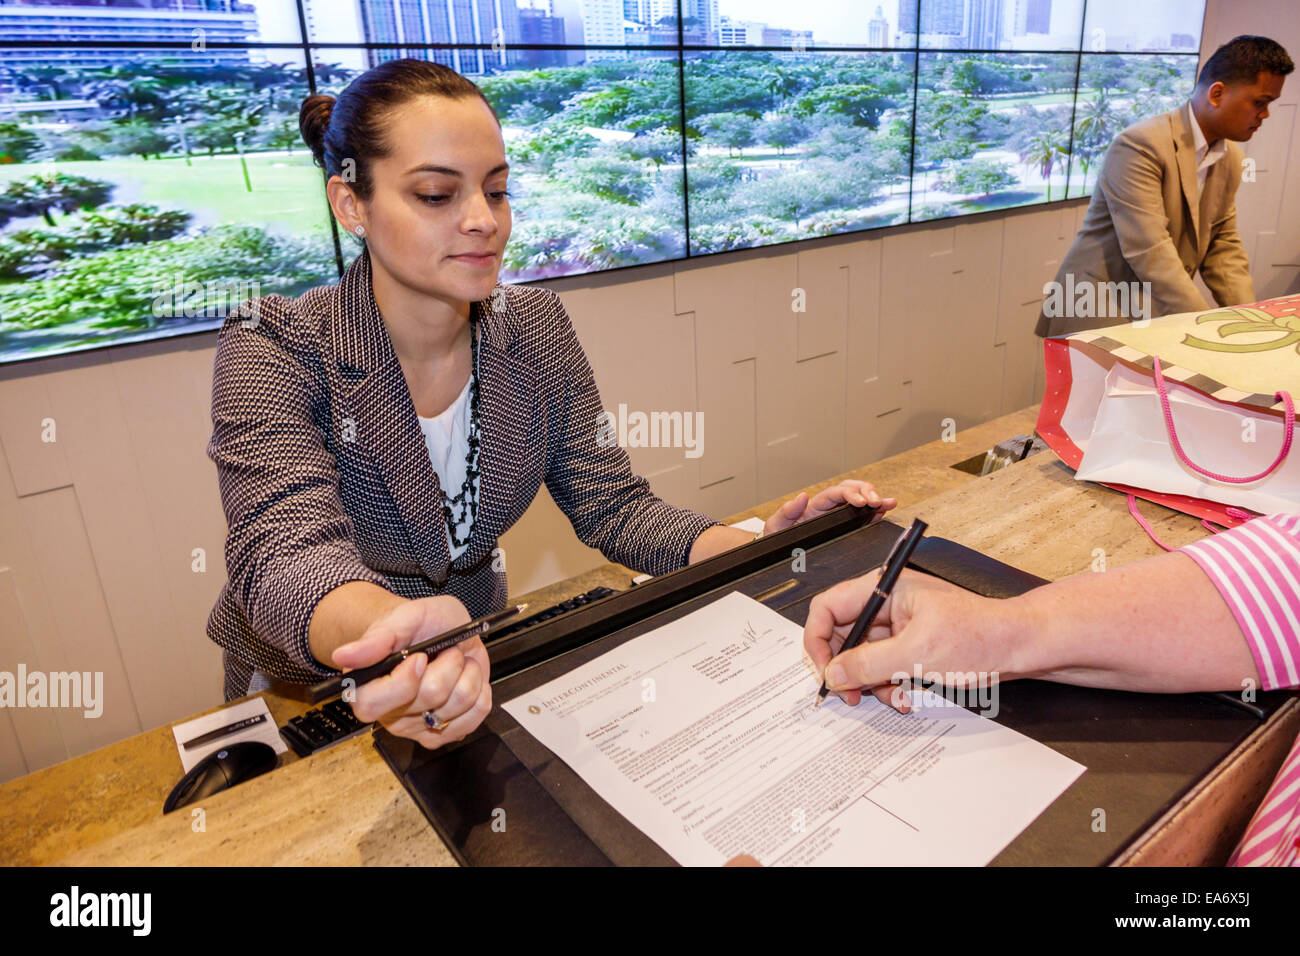 Miami Florida Intercontinental hotel lobby front desk reservations woman employee working job - Stock Image